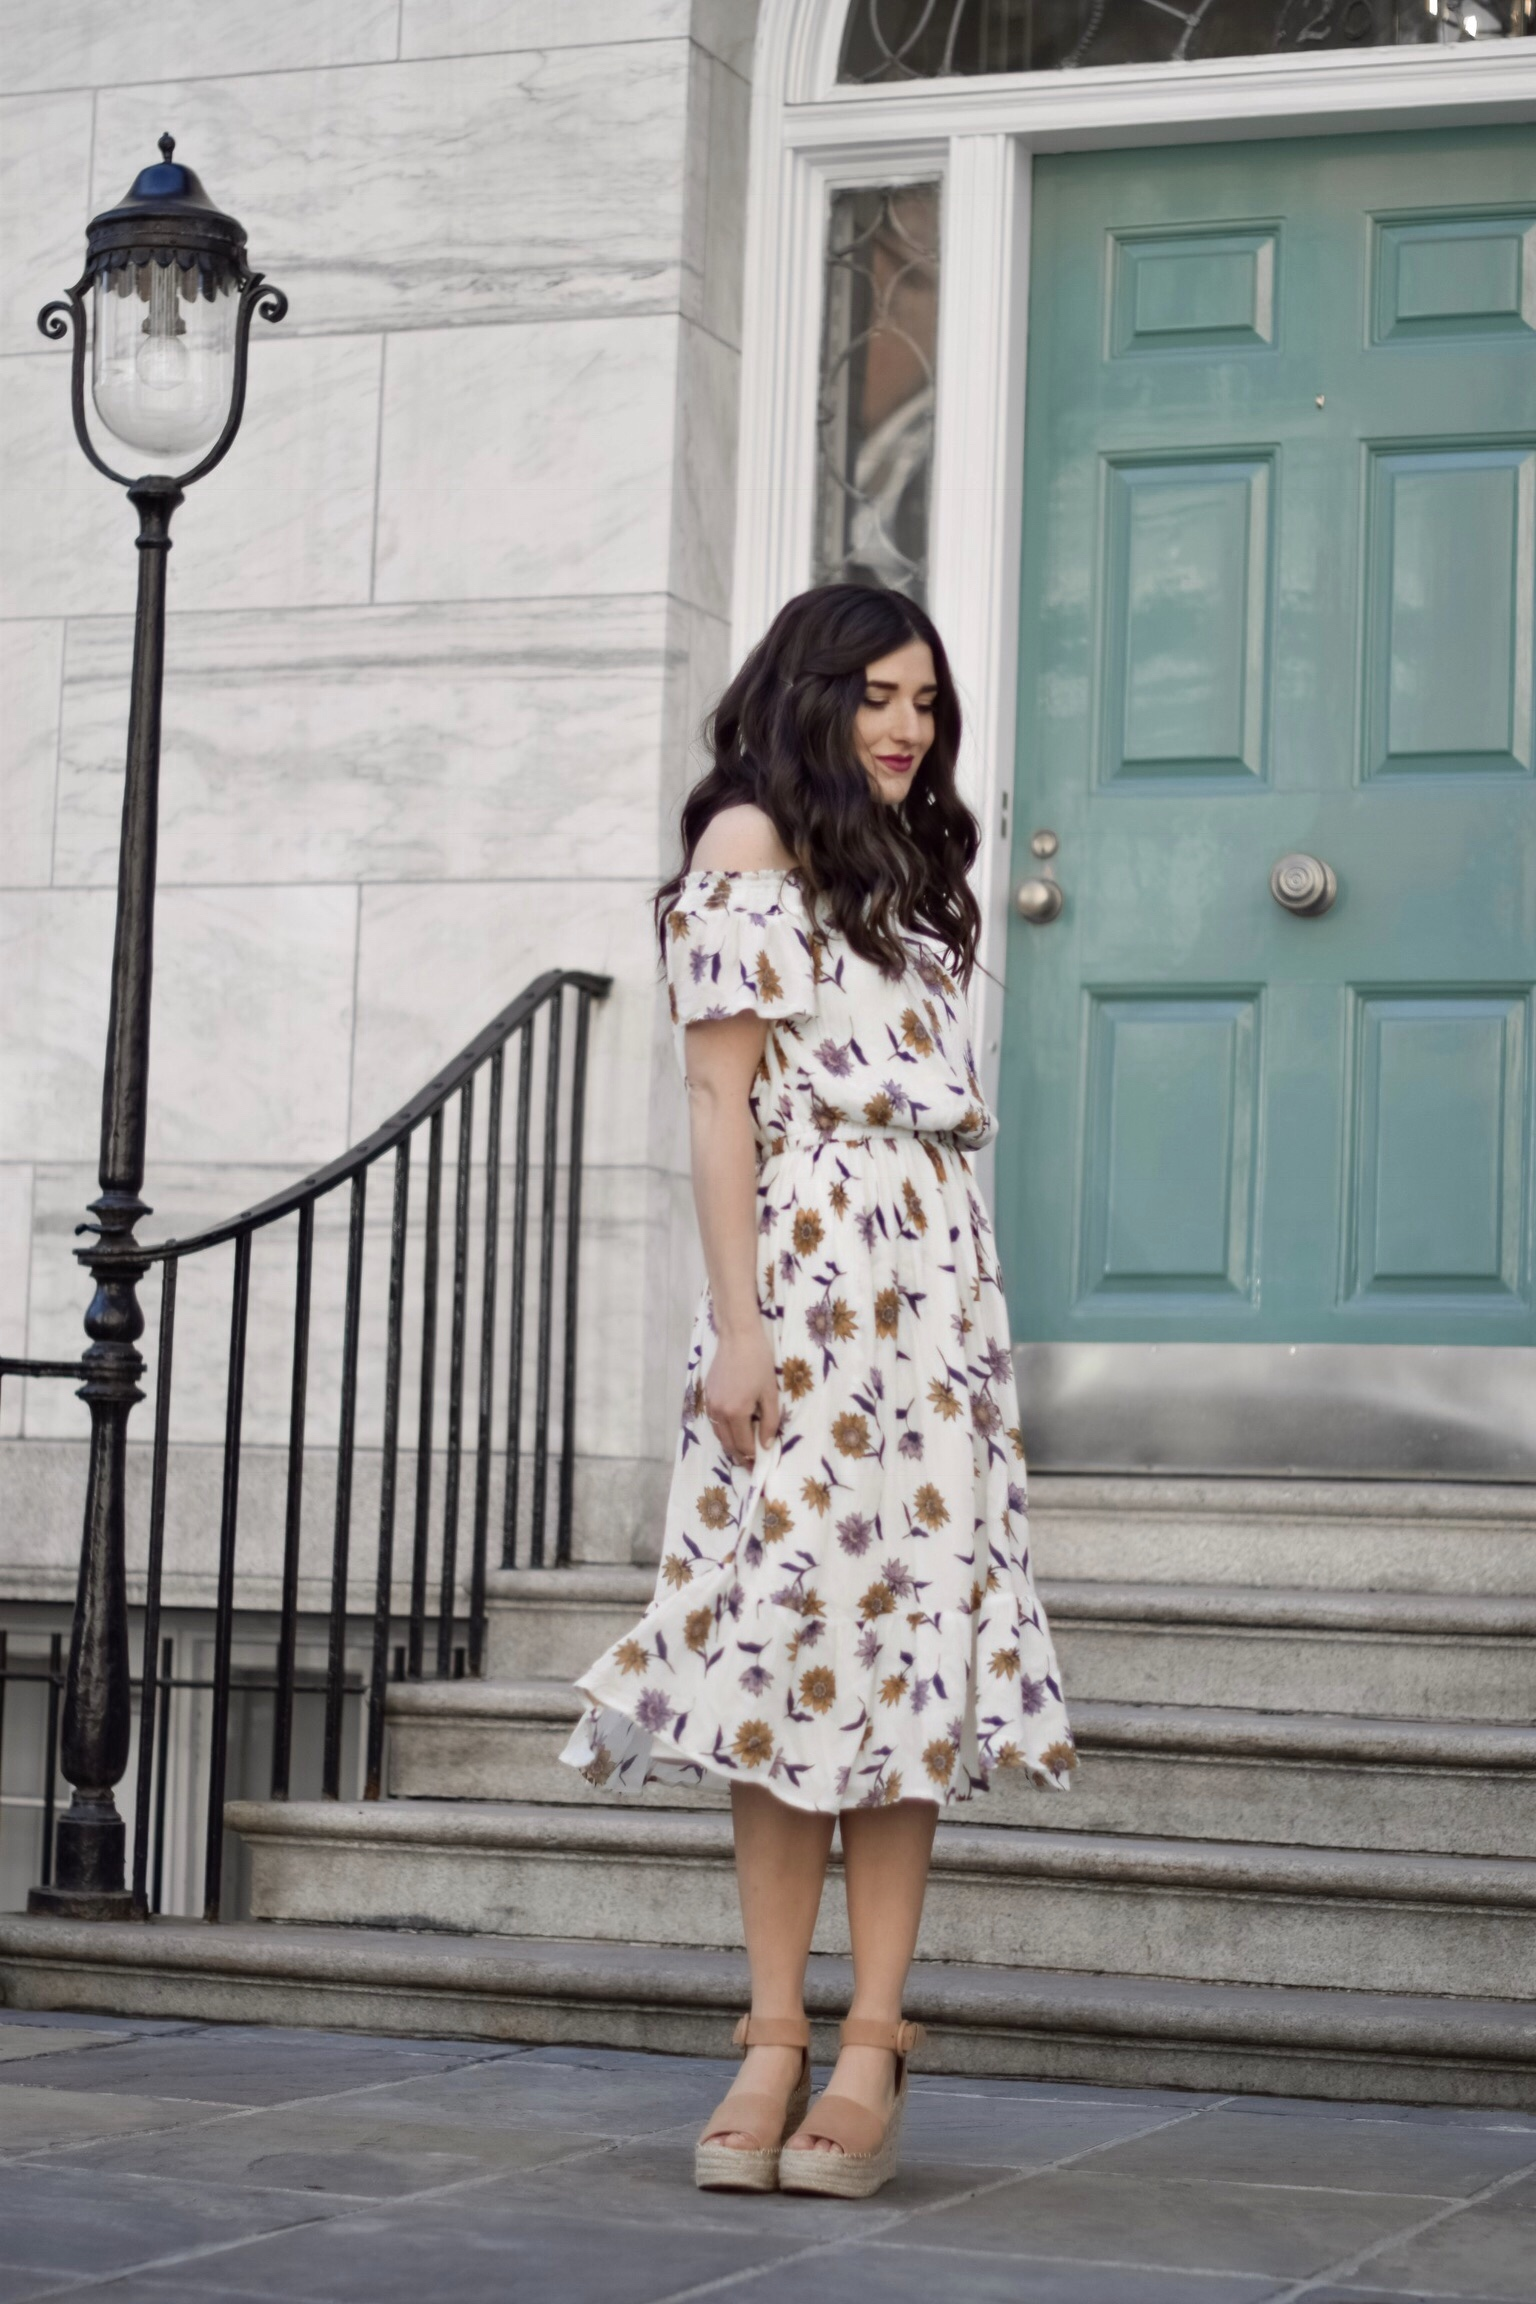 Floral Cold Shoulder Dress Espadrille Wedges My Top 3 Rules Of Business Esther Santer Fashion Blog NYC Street Style Blogger Outfit OOTD Trendy Old Navy Marc Fisher Beautiful Photoshoot New York City Summer Spring Shoes How To  Wear Shopping Wardrobe.jpg